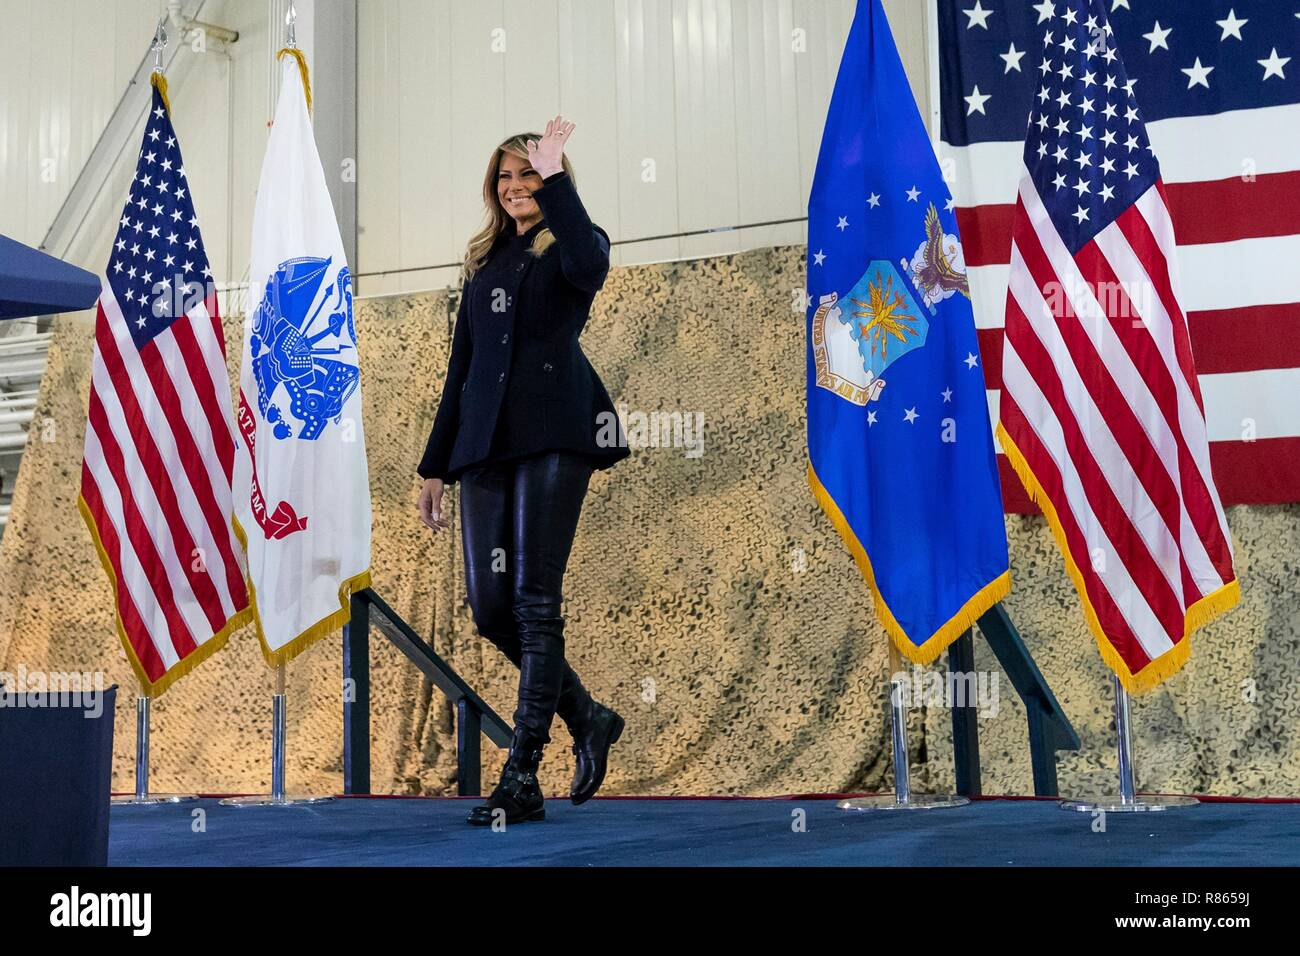 U.S. First Lady Melania Trump waves to service members and their families gathered in Hangar 789  during a holiday visit to Langley Air Force Base December 12, 2018 in Hampton, Virginia. - Stock Image